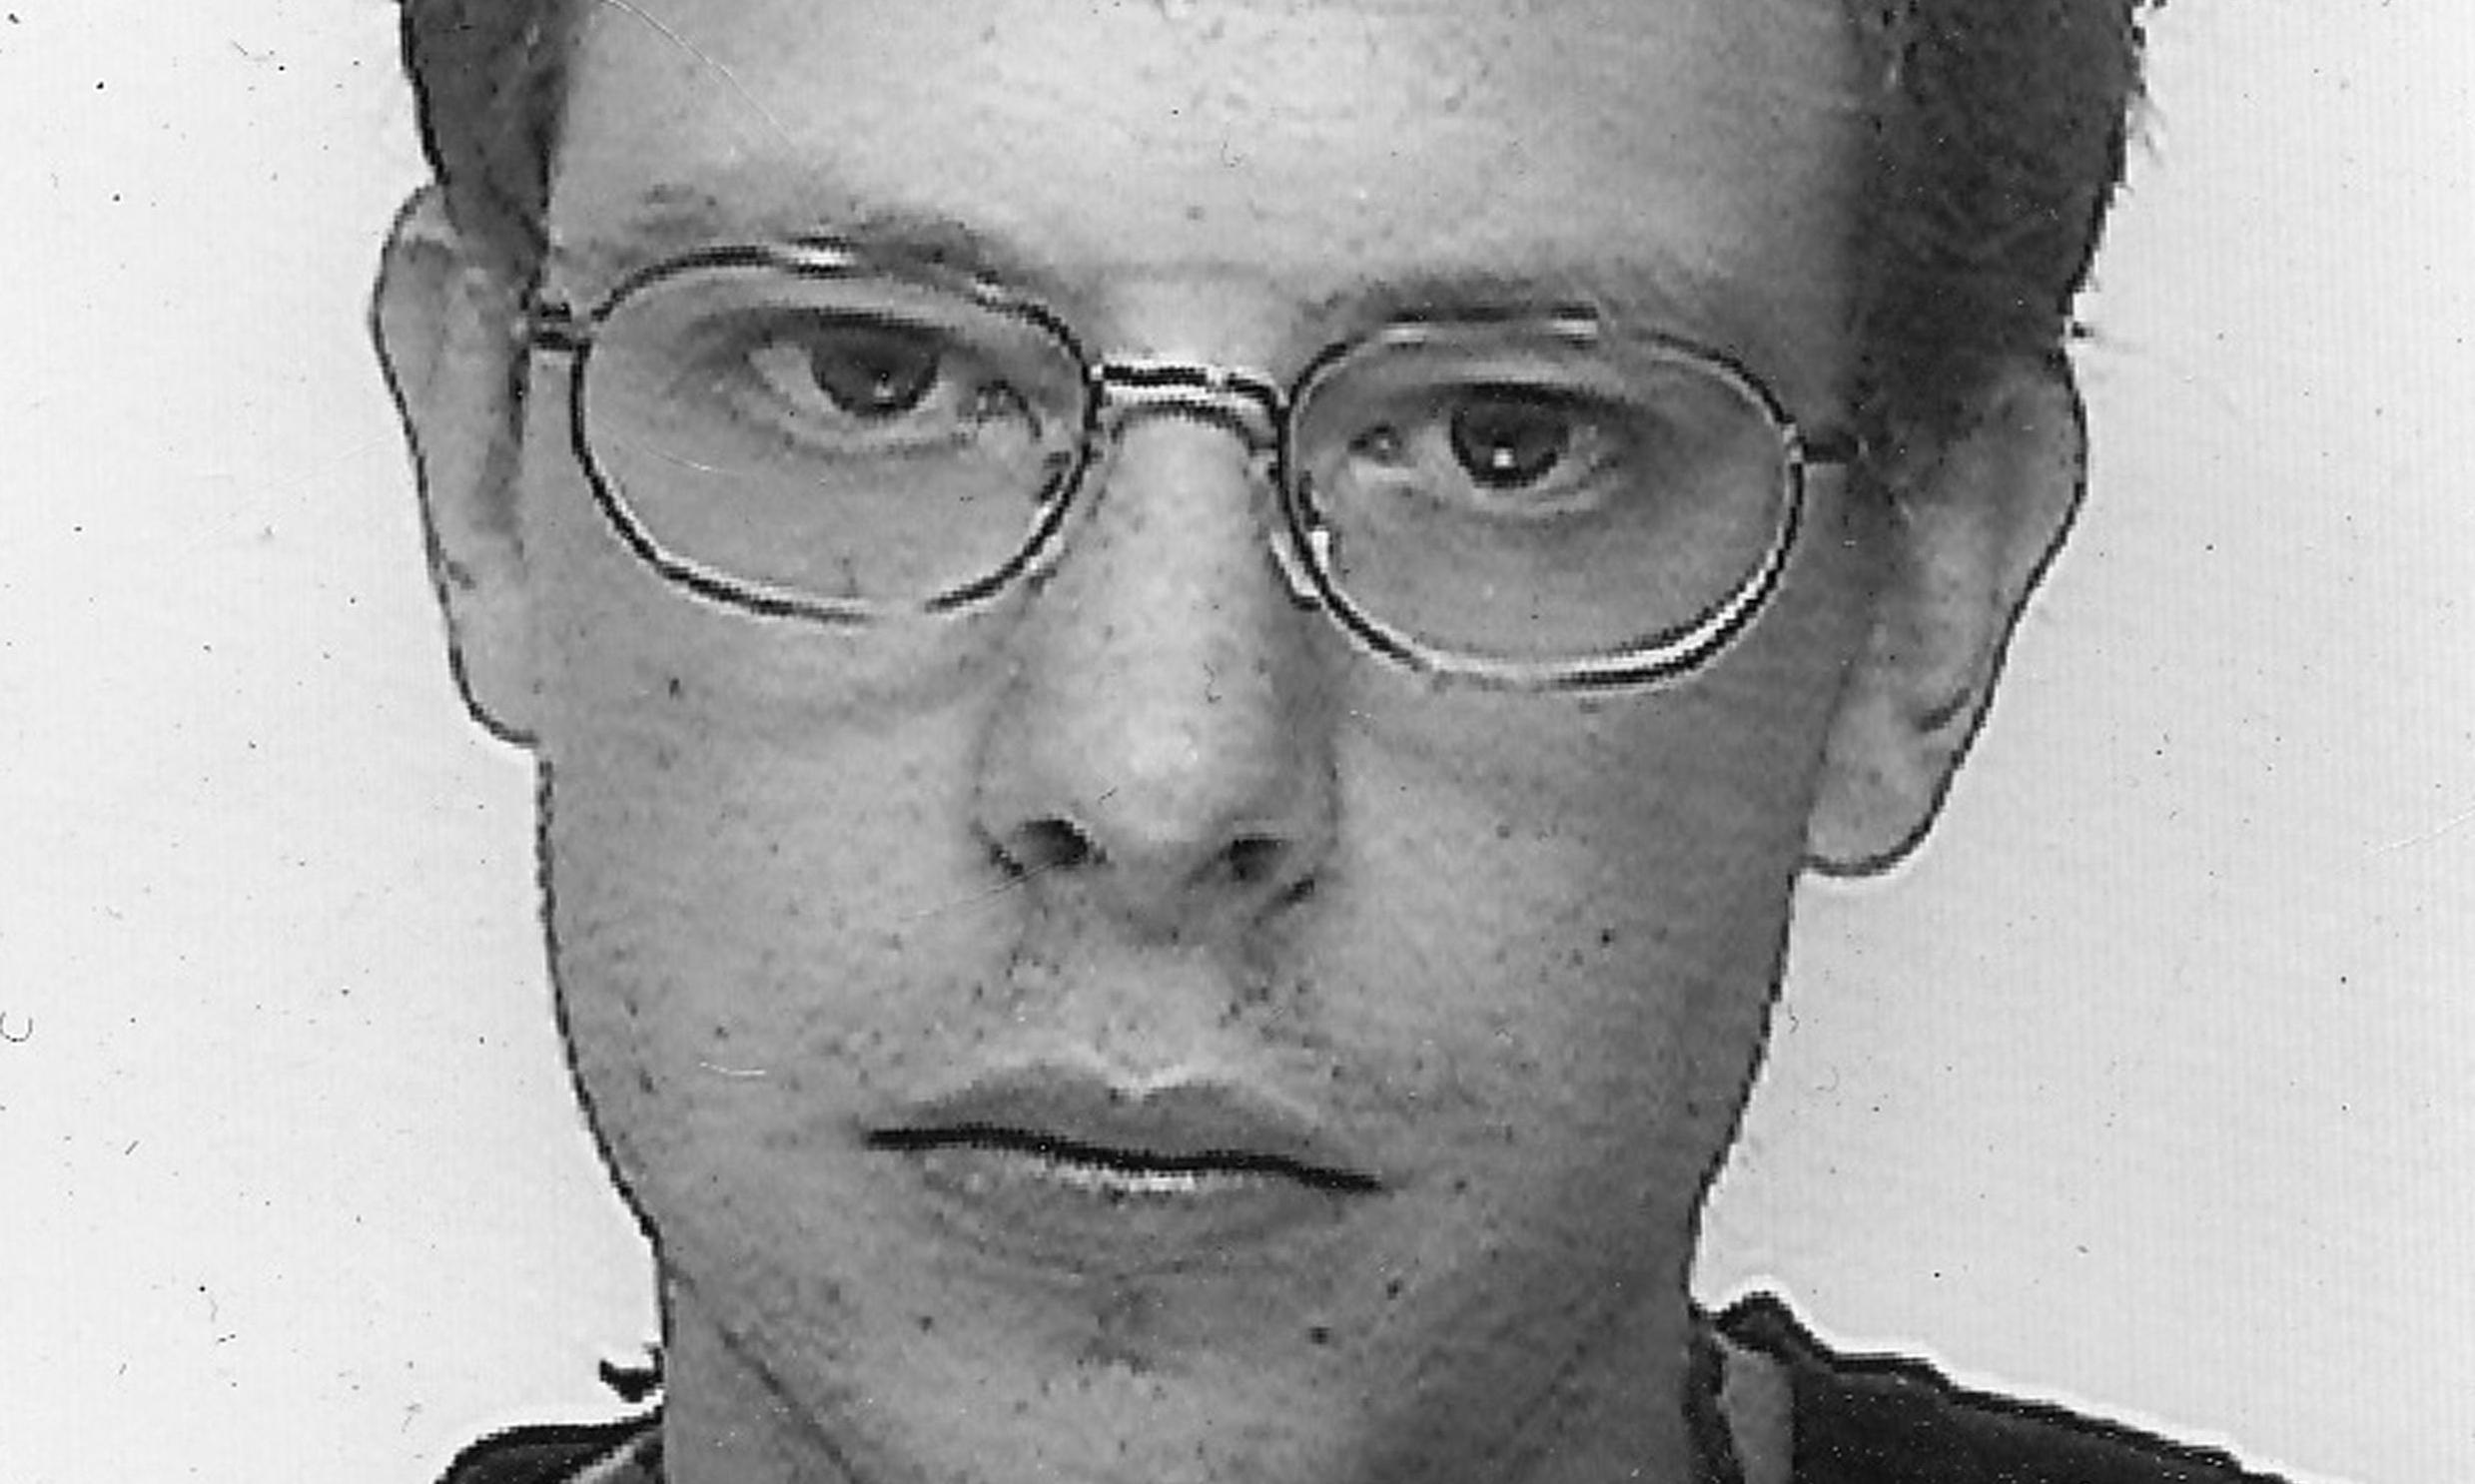 Judge 'not sure' use of restraint belt across man's face led to death